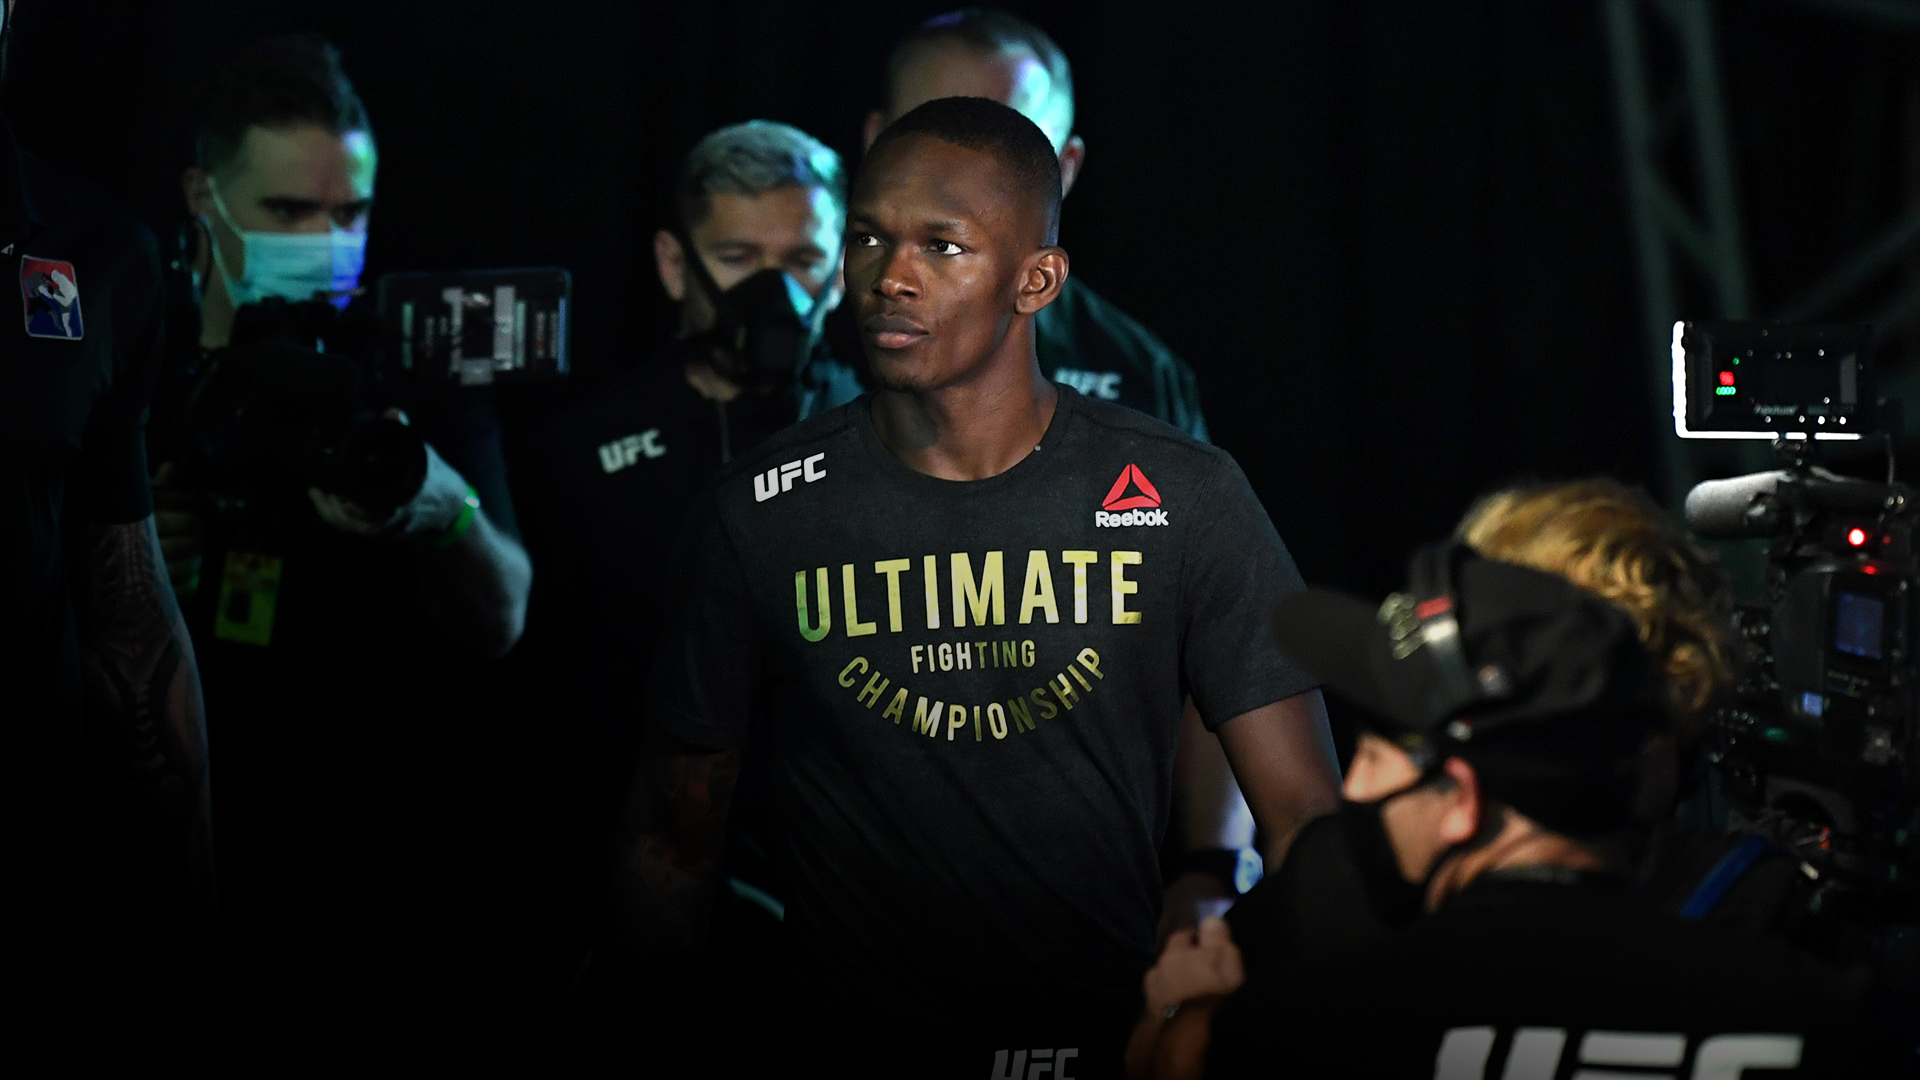 Israel Adesanya of Nigeria walks out towards the Octagon prior to facing Paulo Costa of Brazil in their middleweight championship bout during UFC 253 inside Flash Forum on UFC Fight Island on September 27, 2020 in Abu Dhabi, United Arab Emirates. (Photo by Josh Hedges/Zuffa LLC)